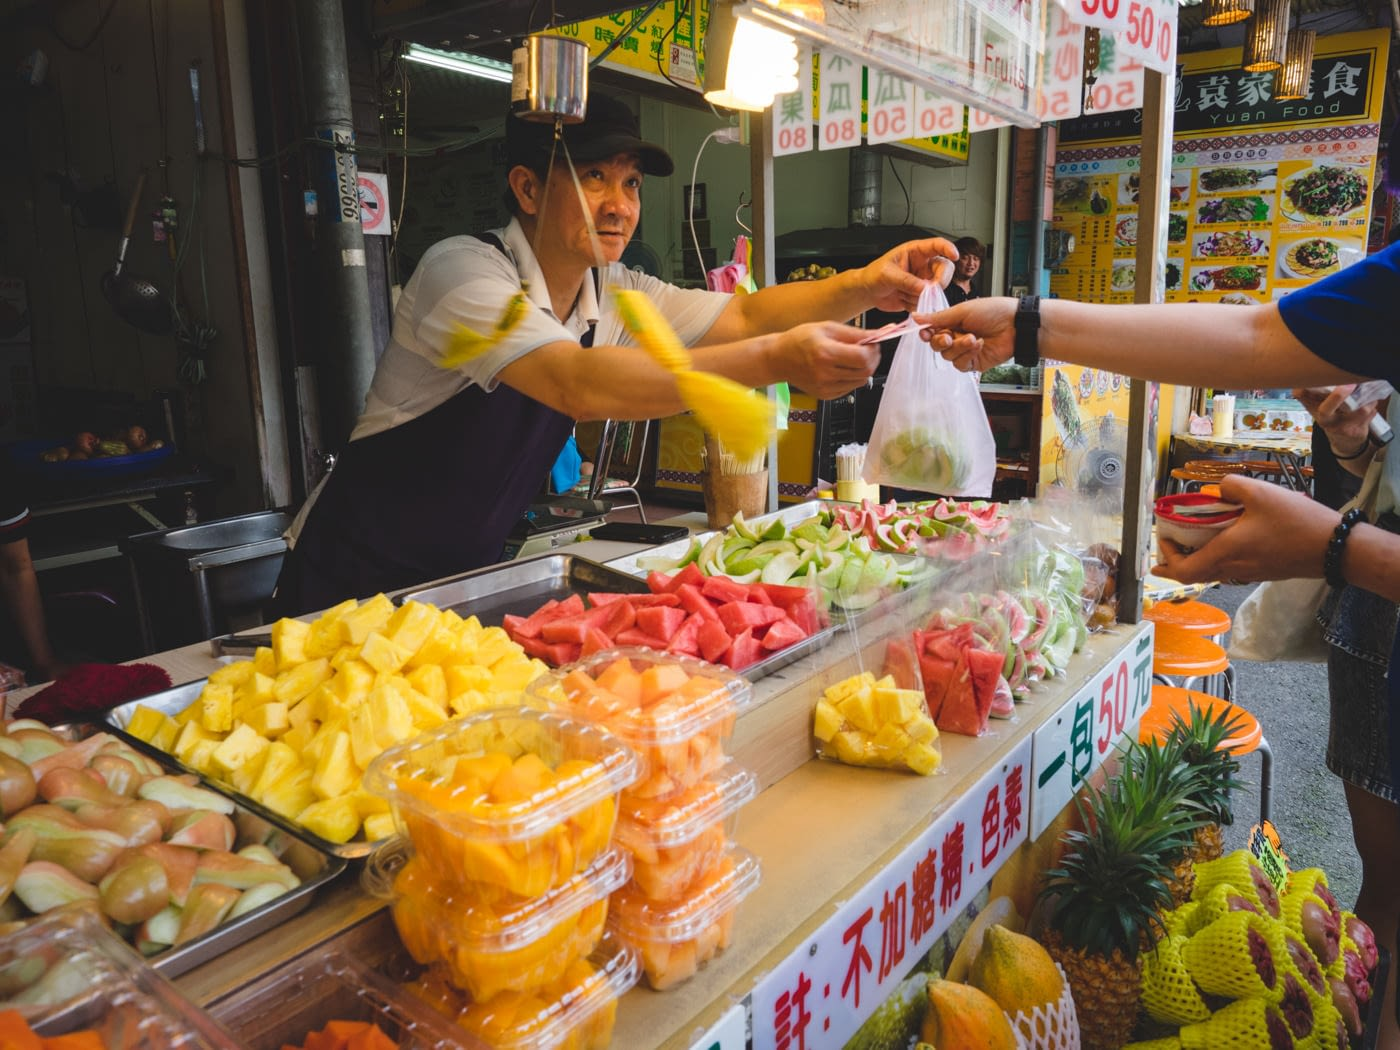 Taiwan - Nantou City - Paying for our fruits